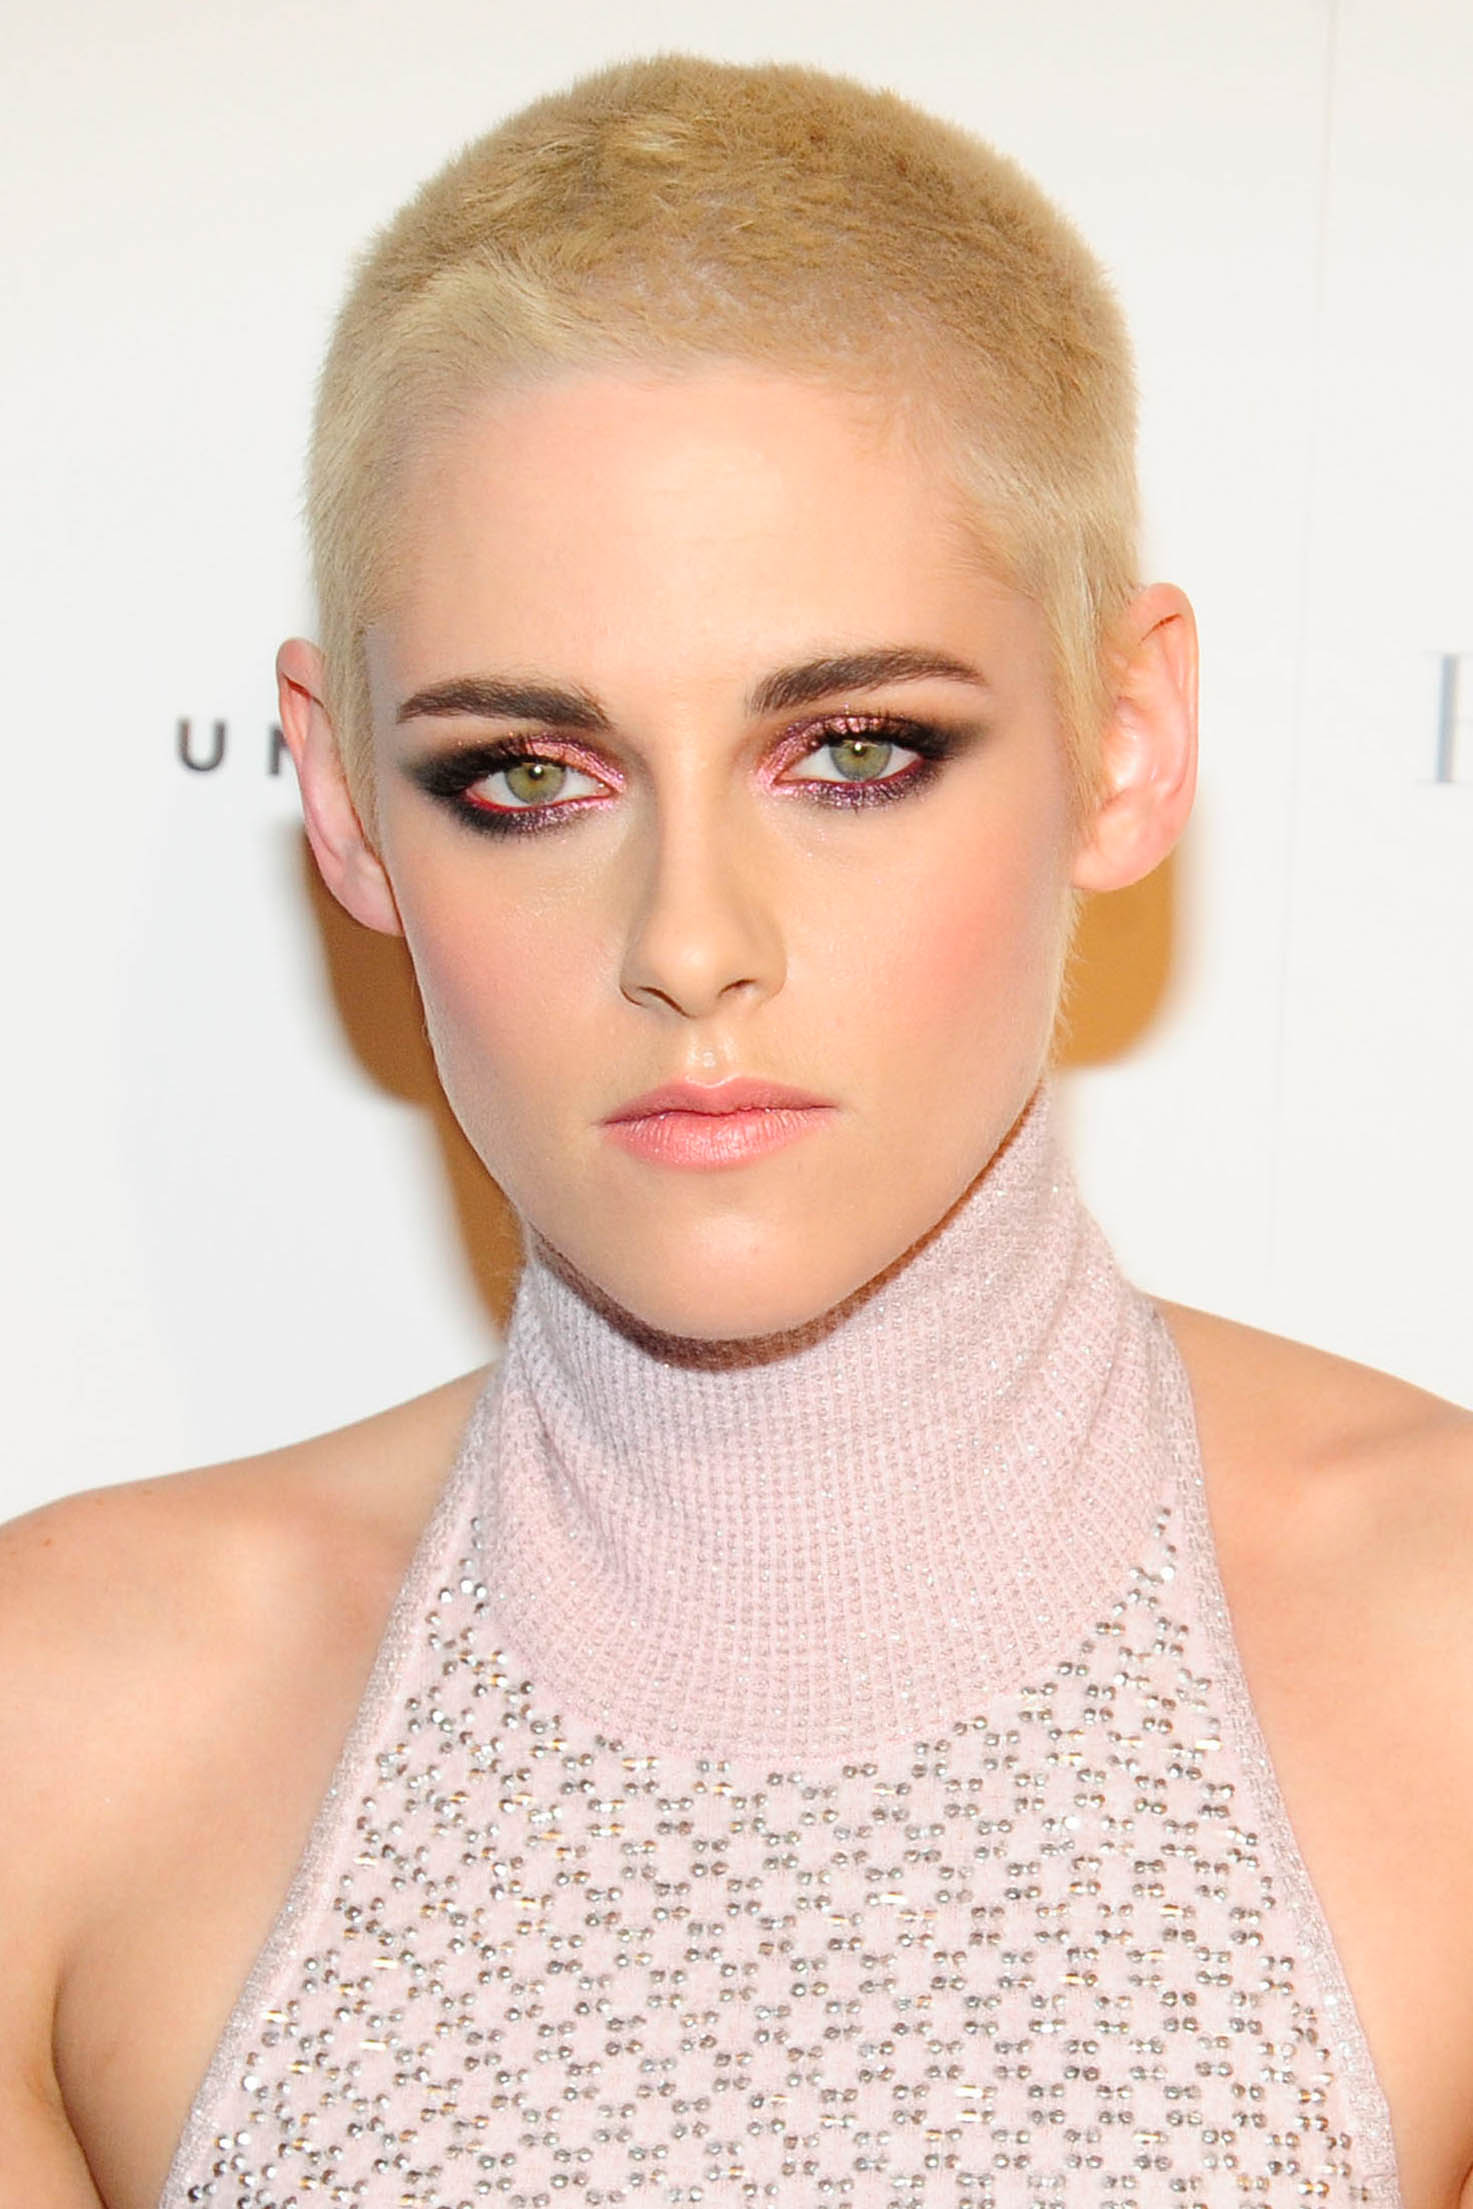 19 Women With Shaved Heads - Female Celebs With Buzzcuts